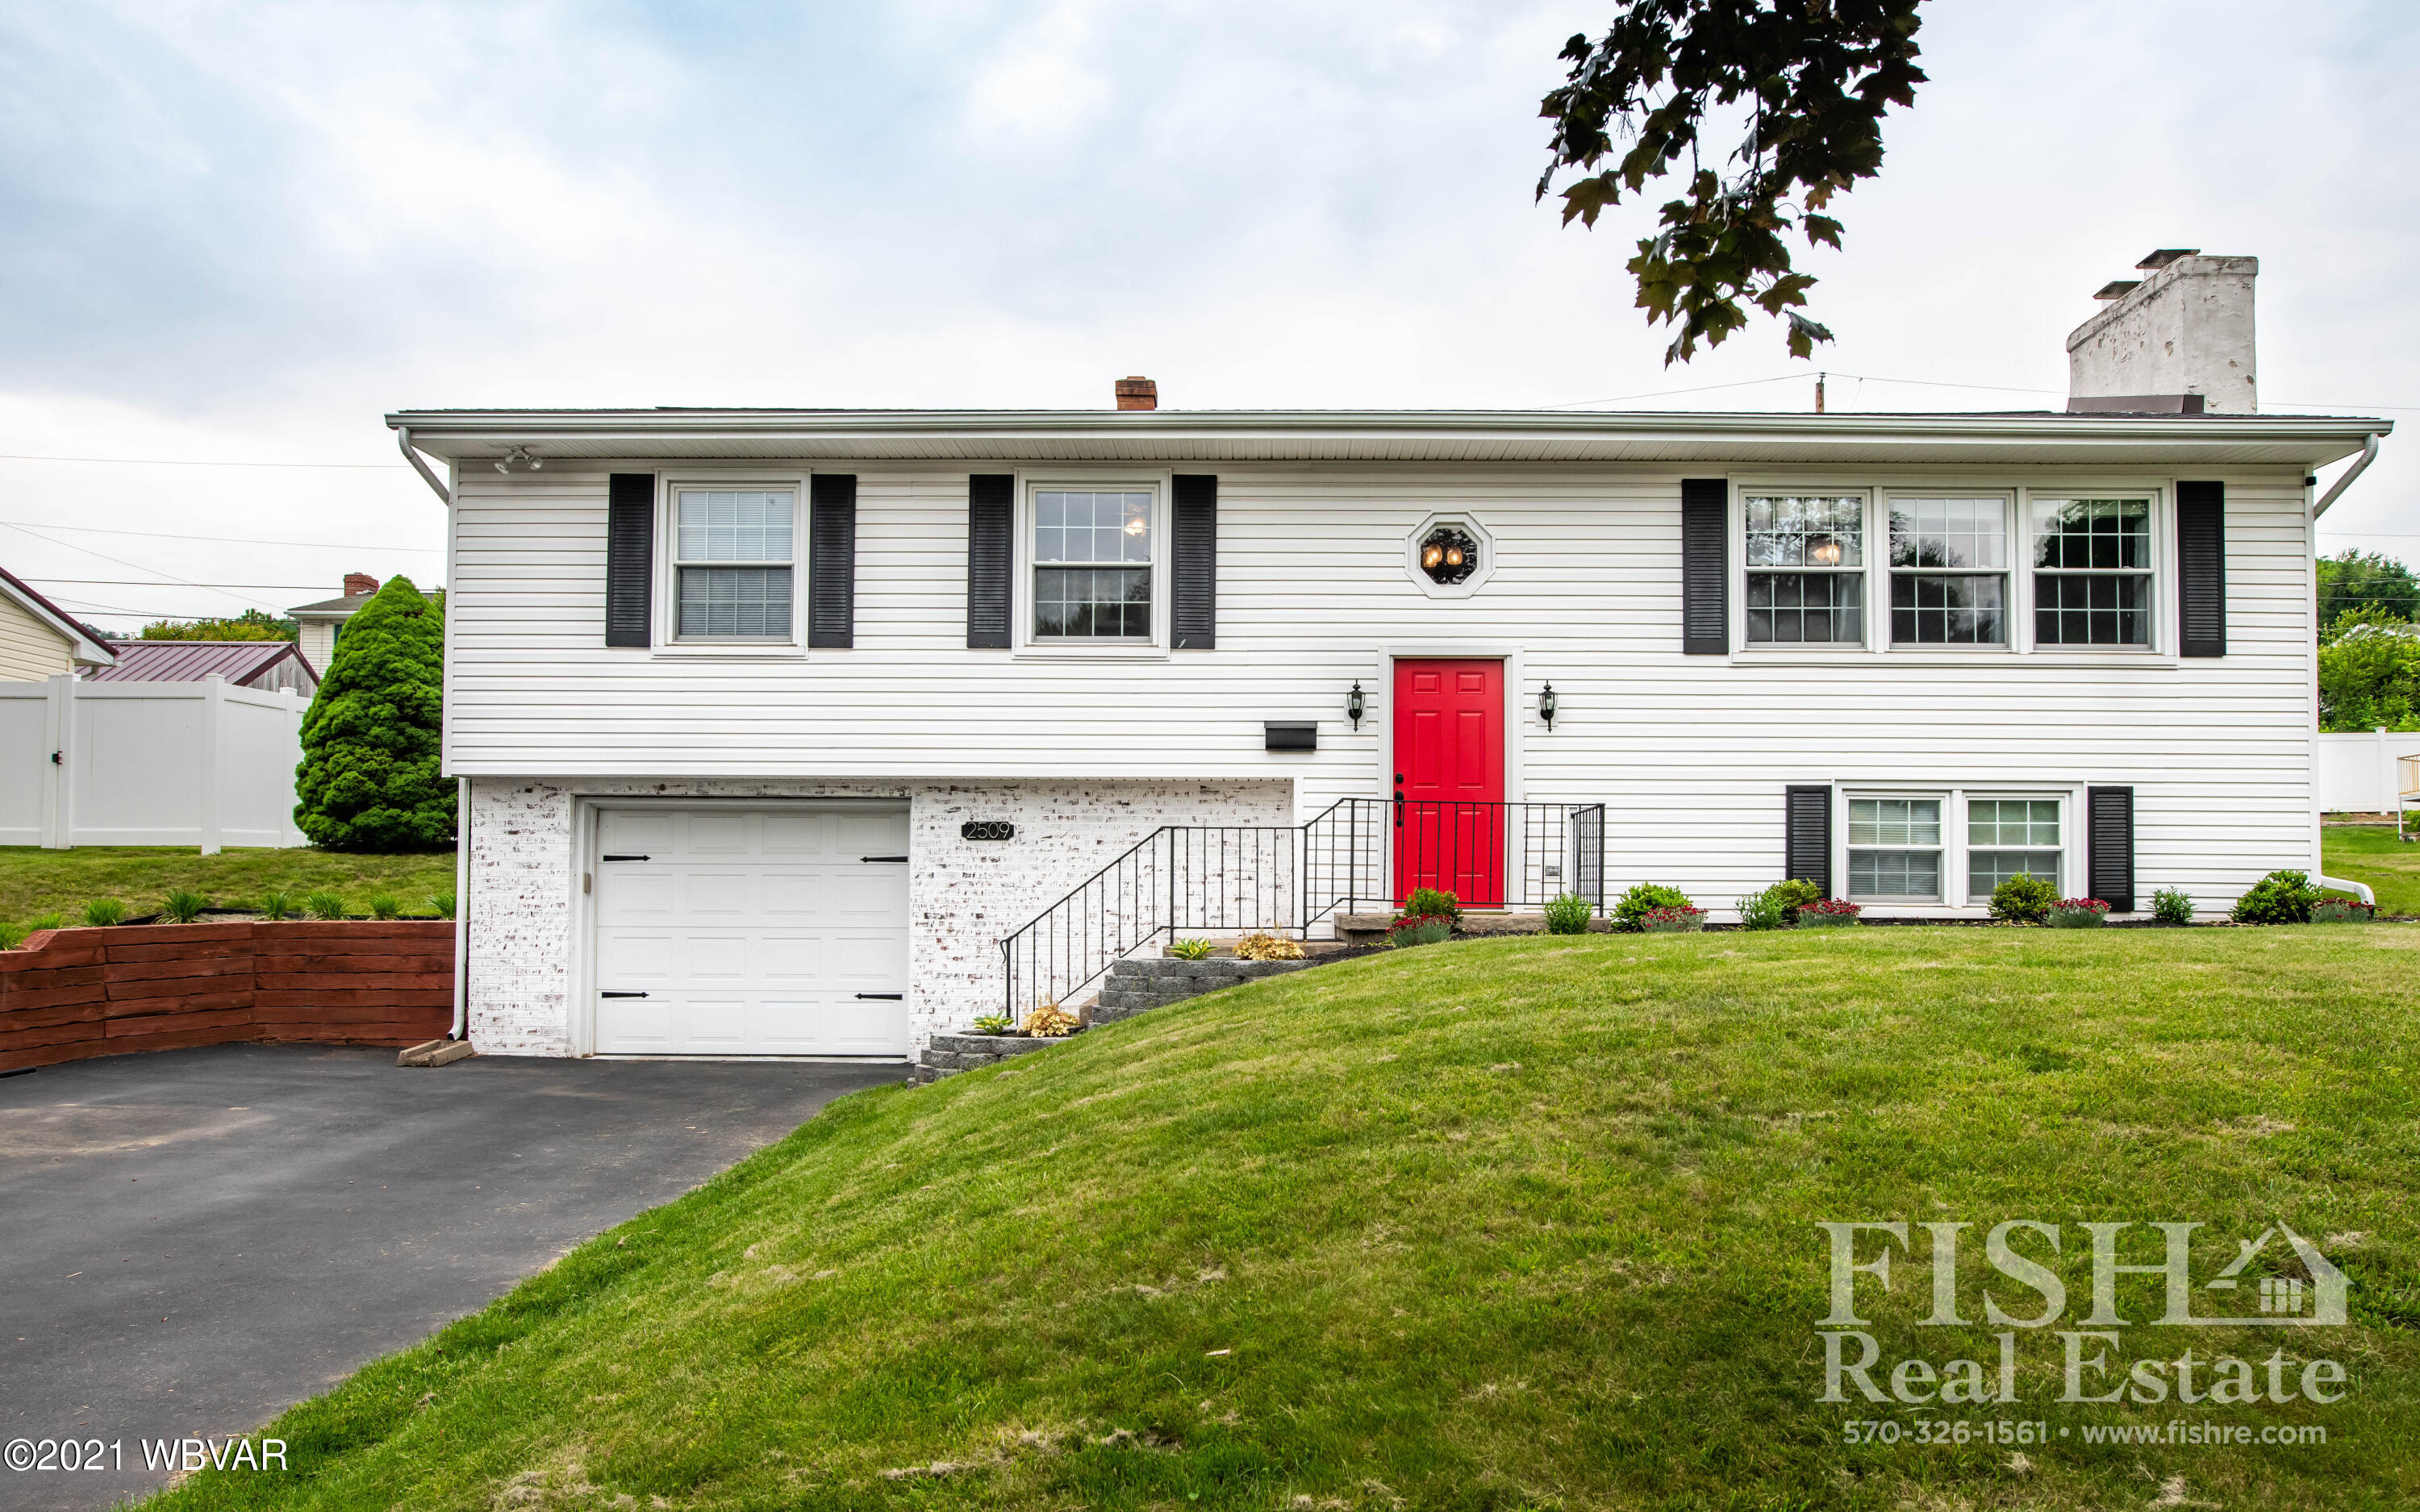 2509 HILLS DRIVE, Williamsport, PA 17701, 4 Bedrooms Bedrooms, ,2.5 BathroomsBathrooms,Residential,For sale,HILLS,WB-92823